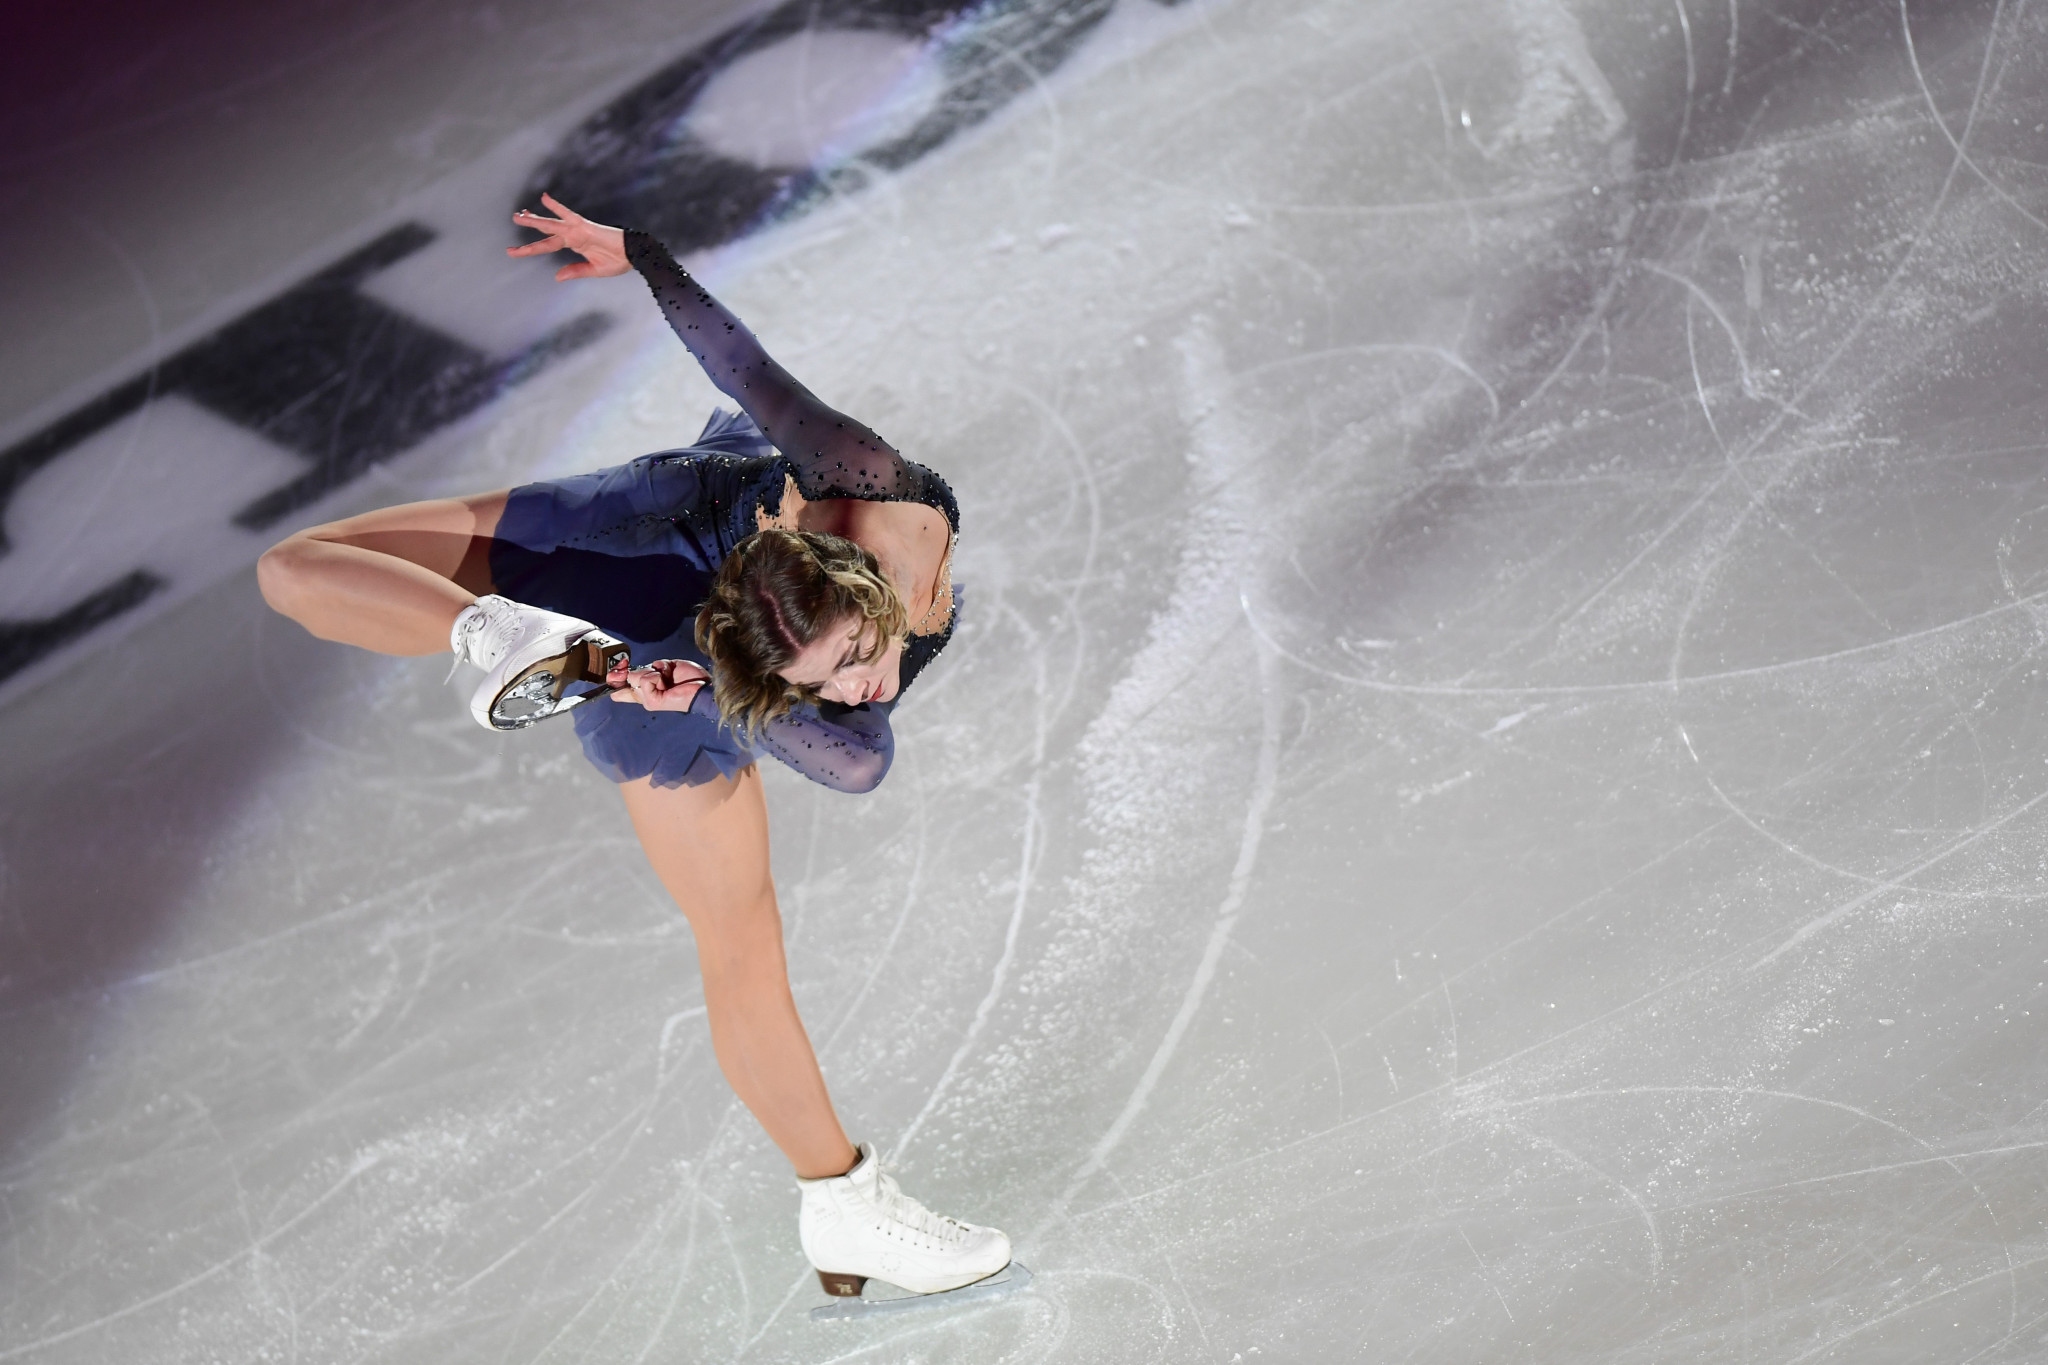 French figure skater Lecavelier tests positive for cocaine